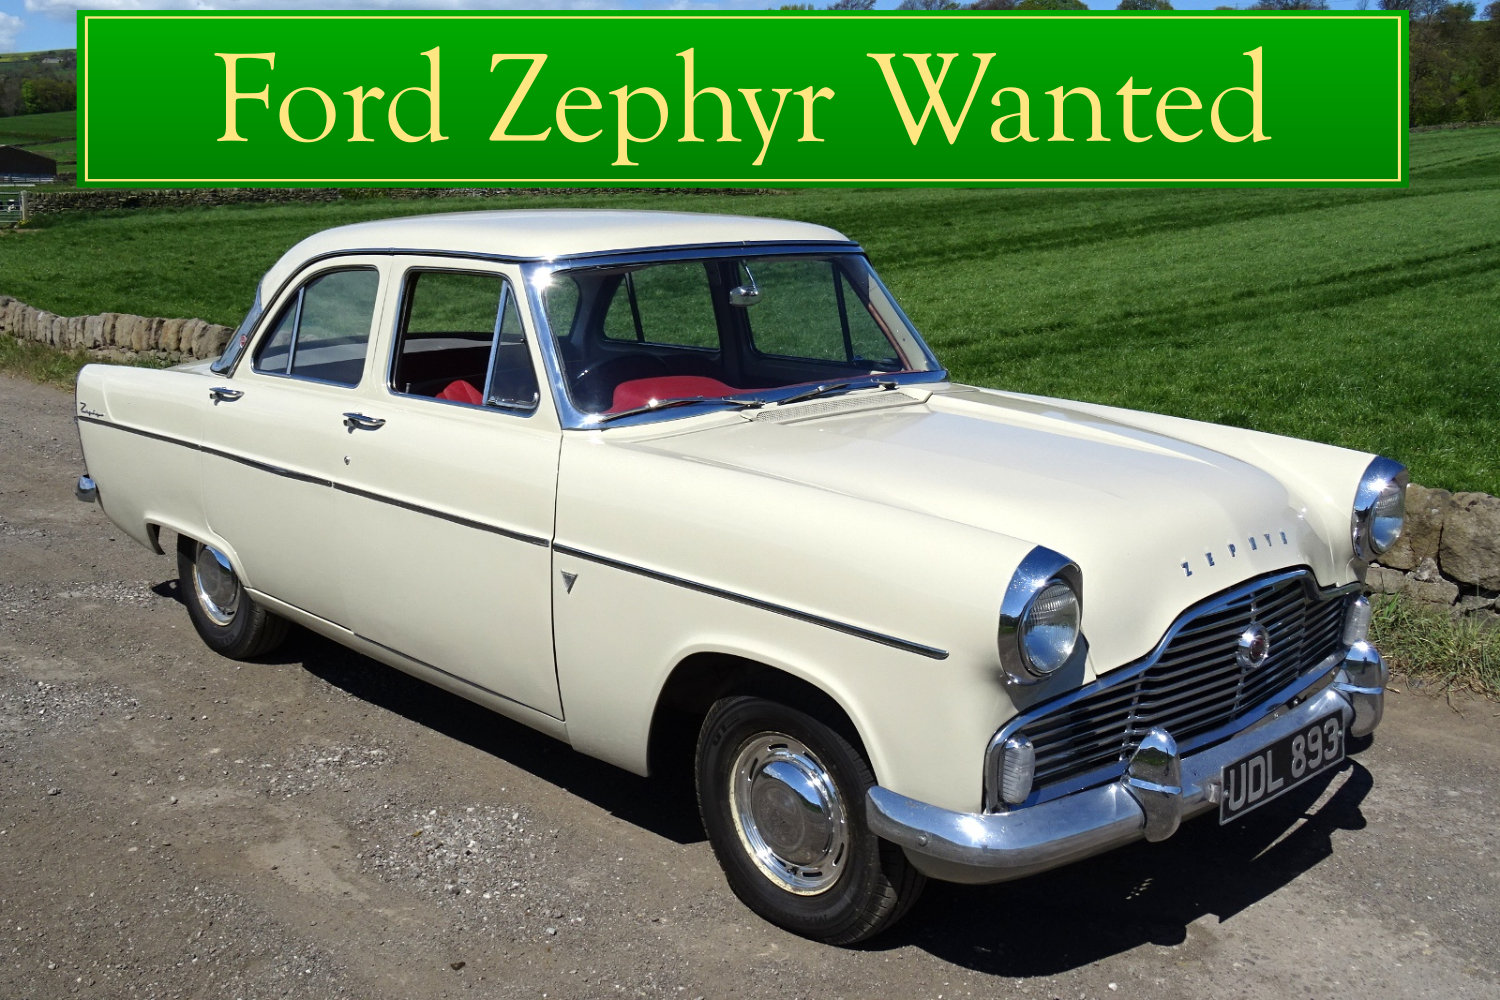 FORD ZEPHYR WANTED, CLASSIC CARS WANTED, IMMEDIATE PAYMENT Wanted (picture 1 of 6)